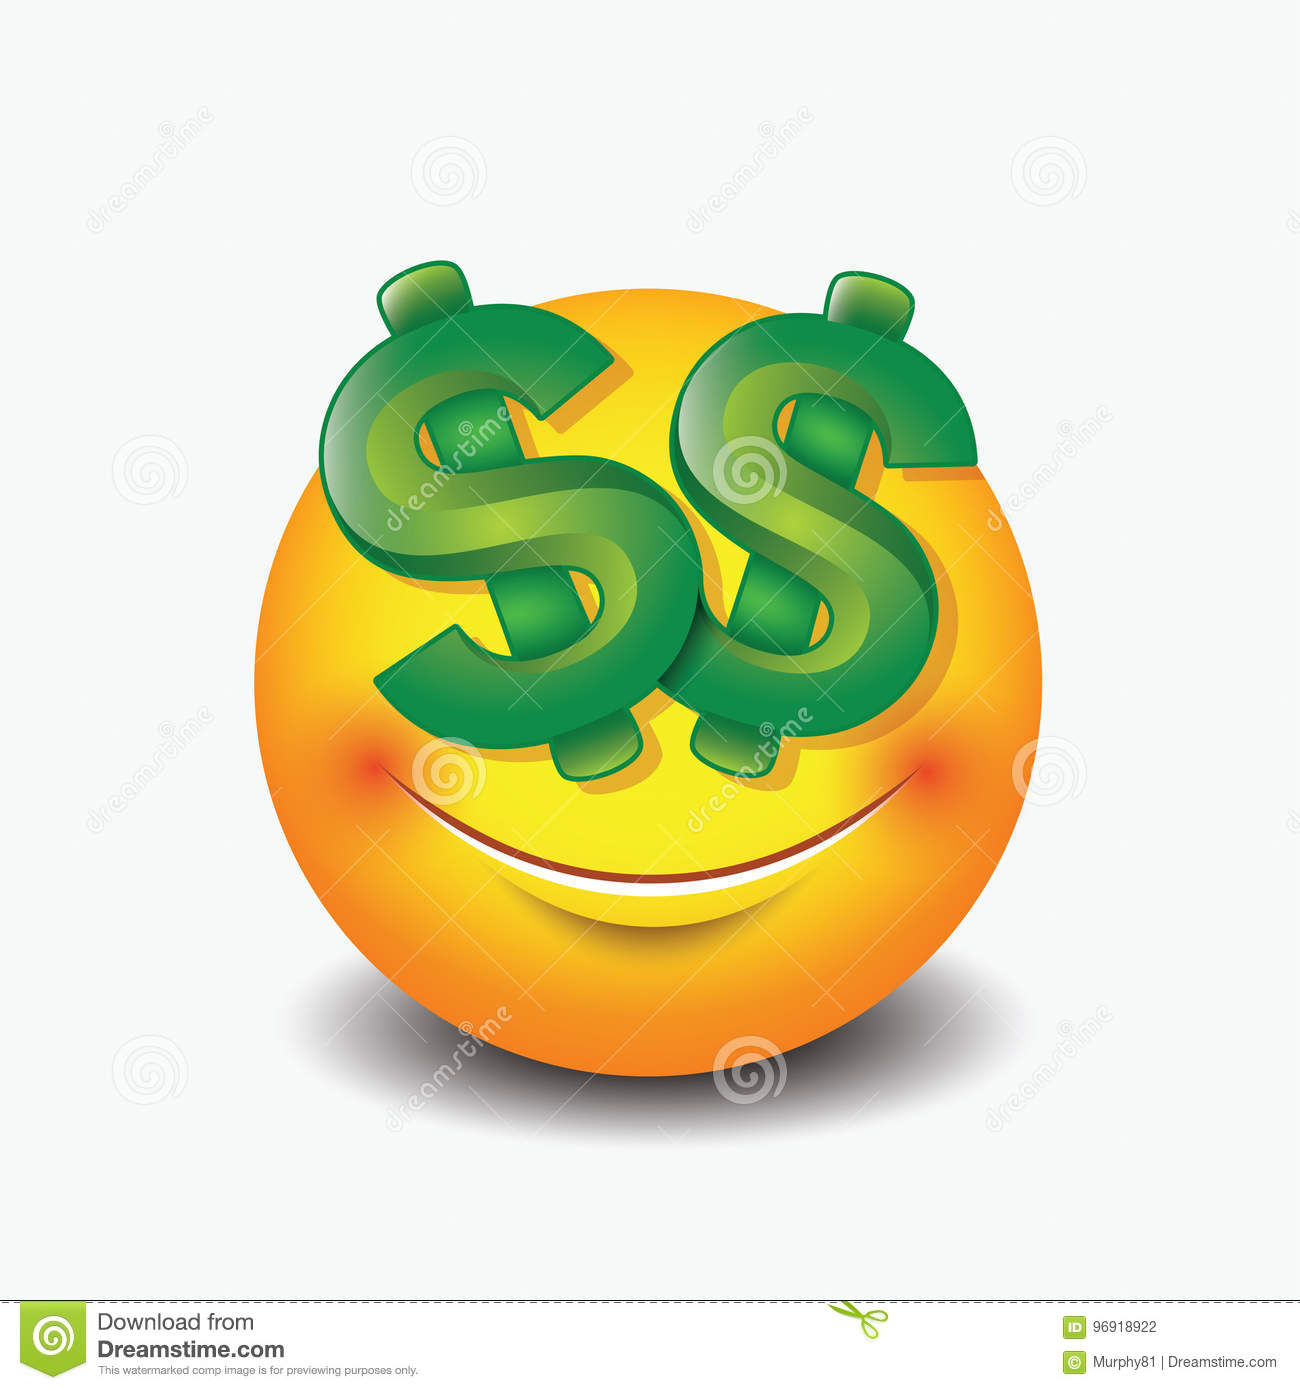 Dollar Eyes Emoticon Emoji Smiley